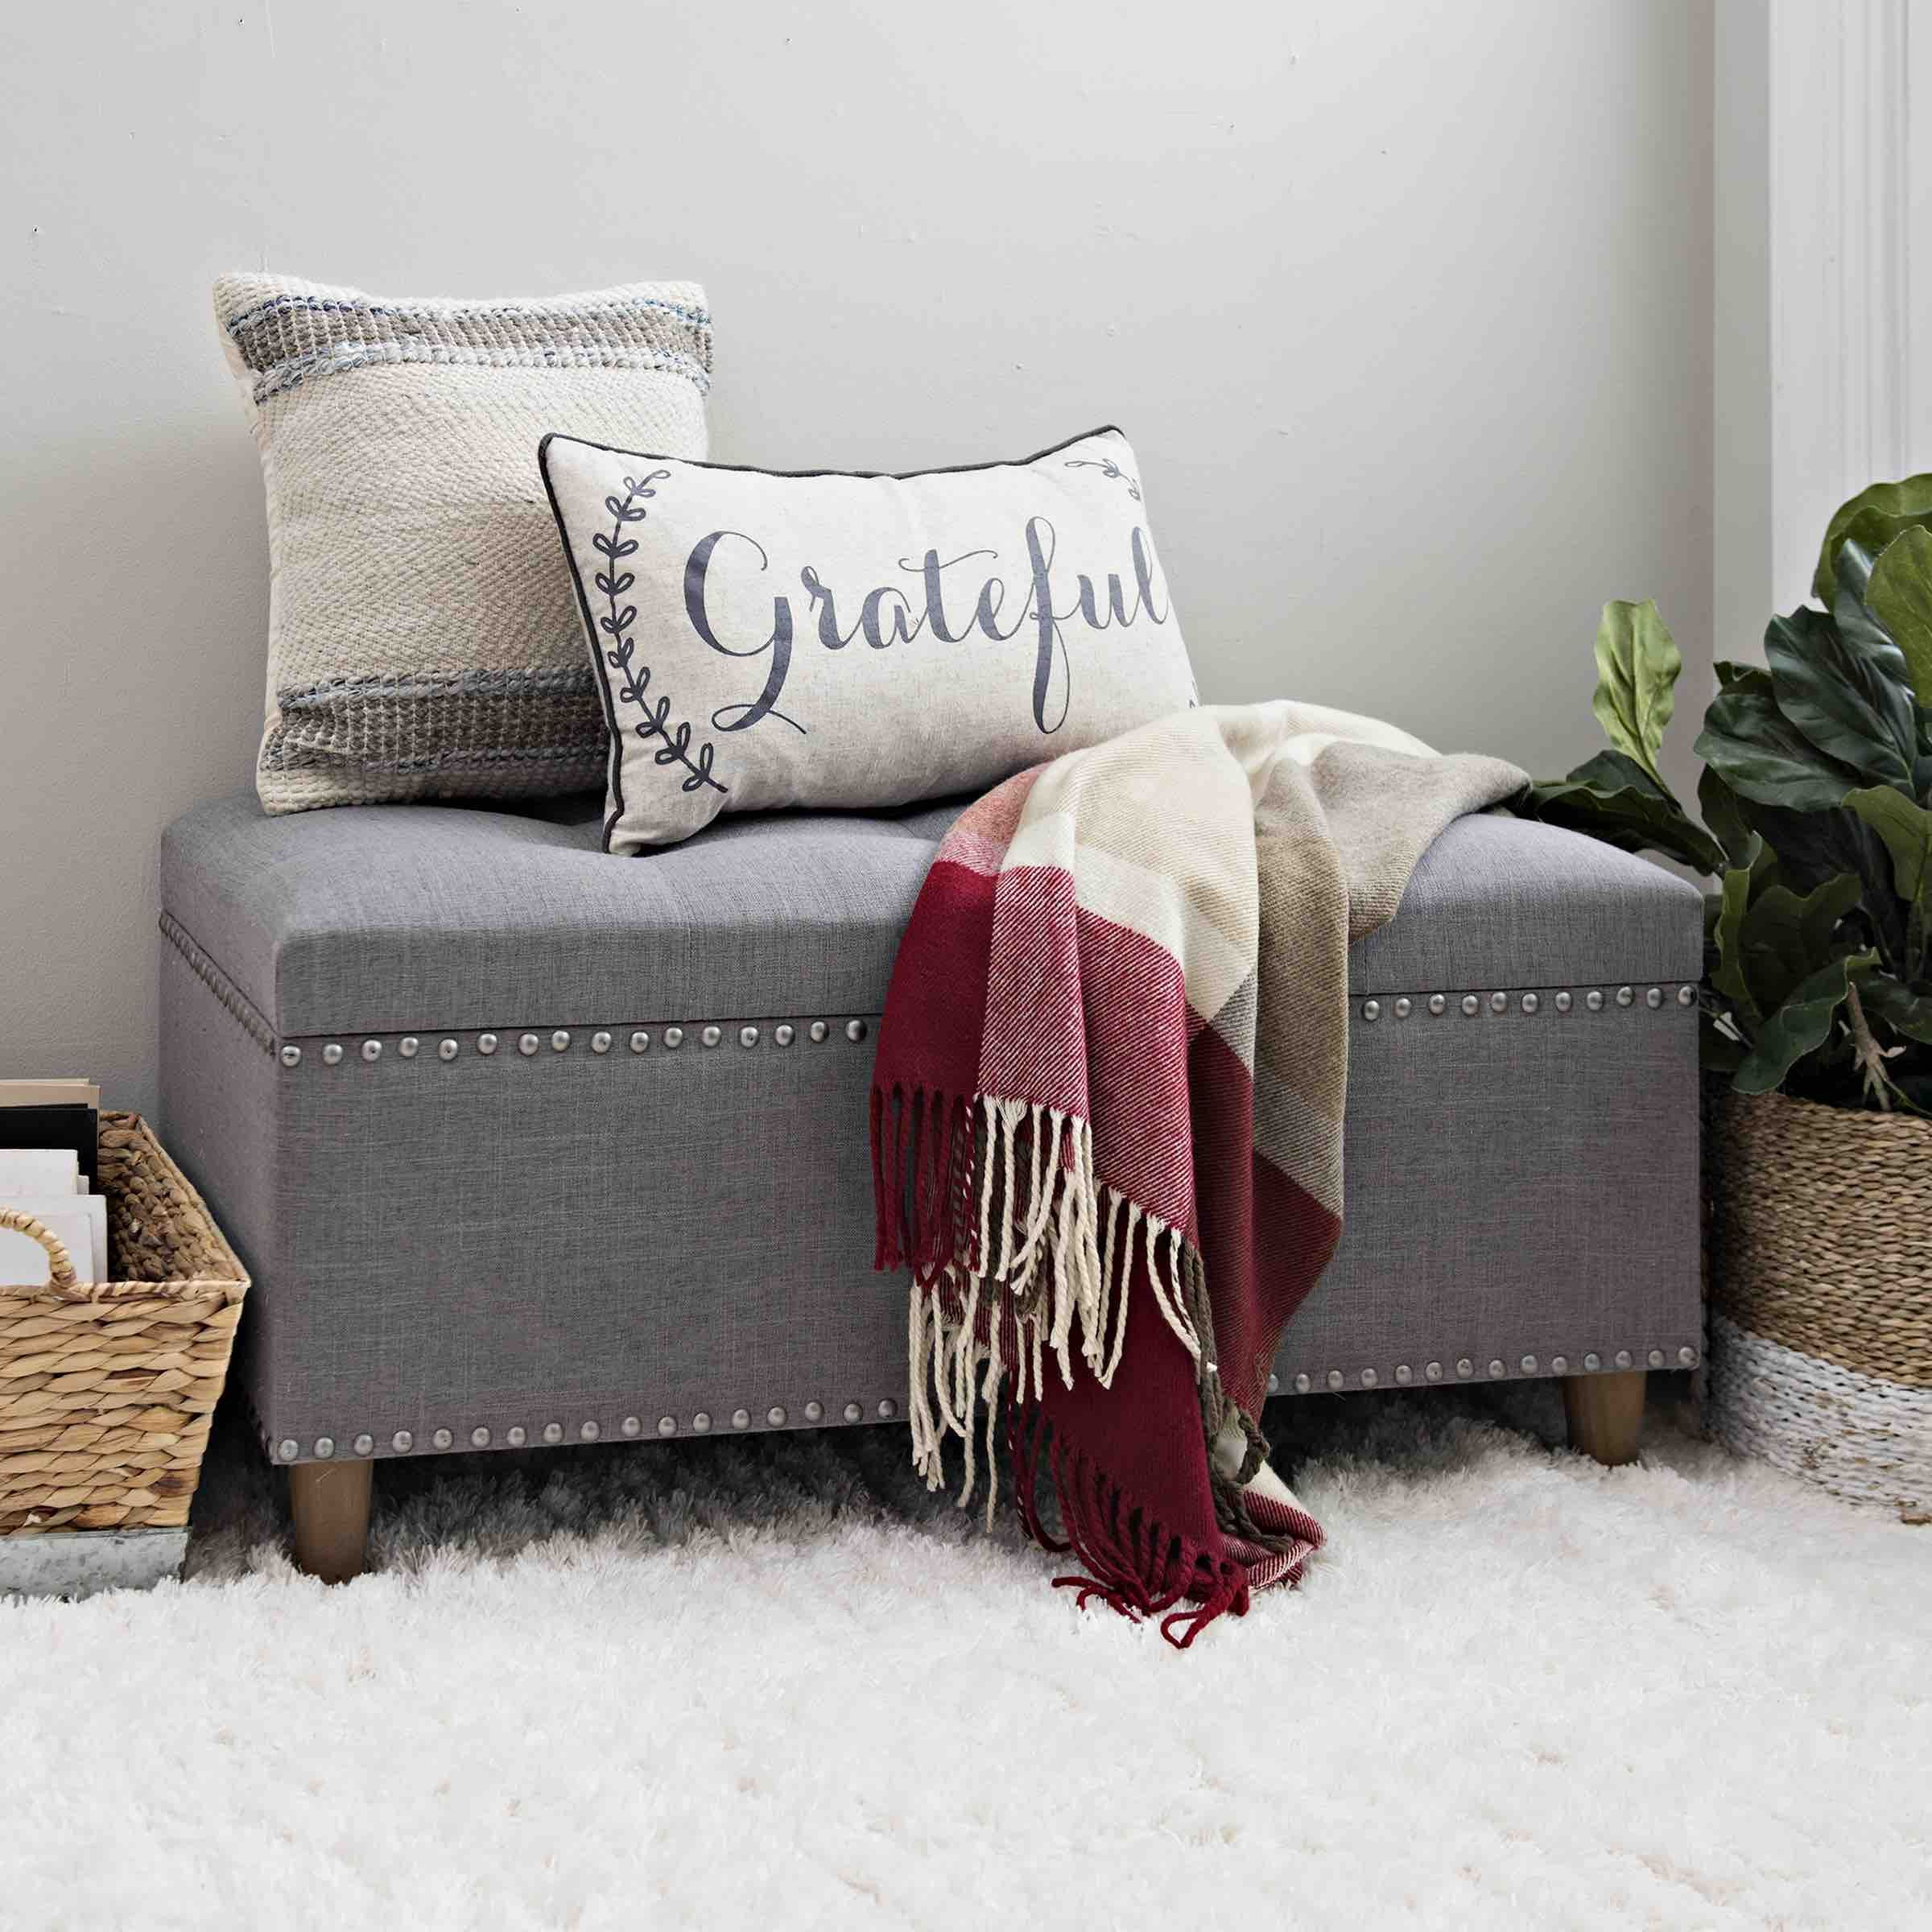 Every Home Needs A Cute Storage Bench For Extra Pillows And Blankets Benches For Living Room Living Room Storage Bench Living Room Bench Storage bench for living room